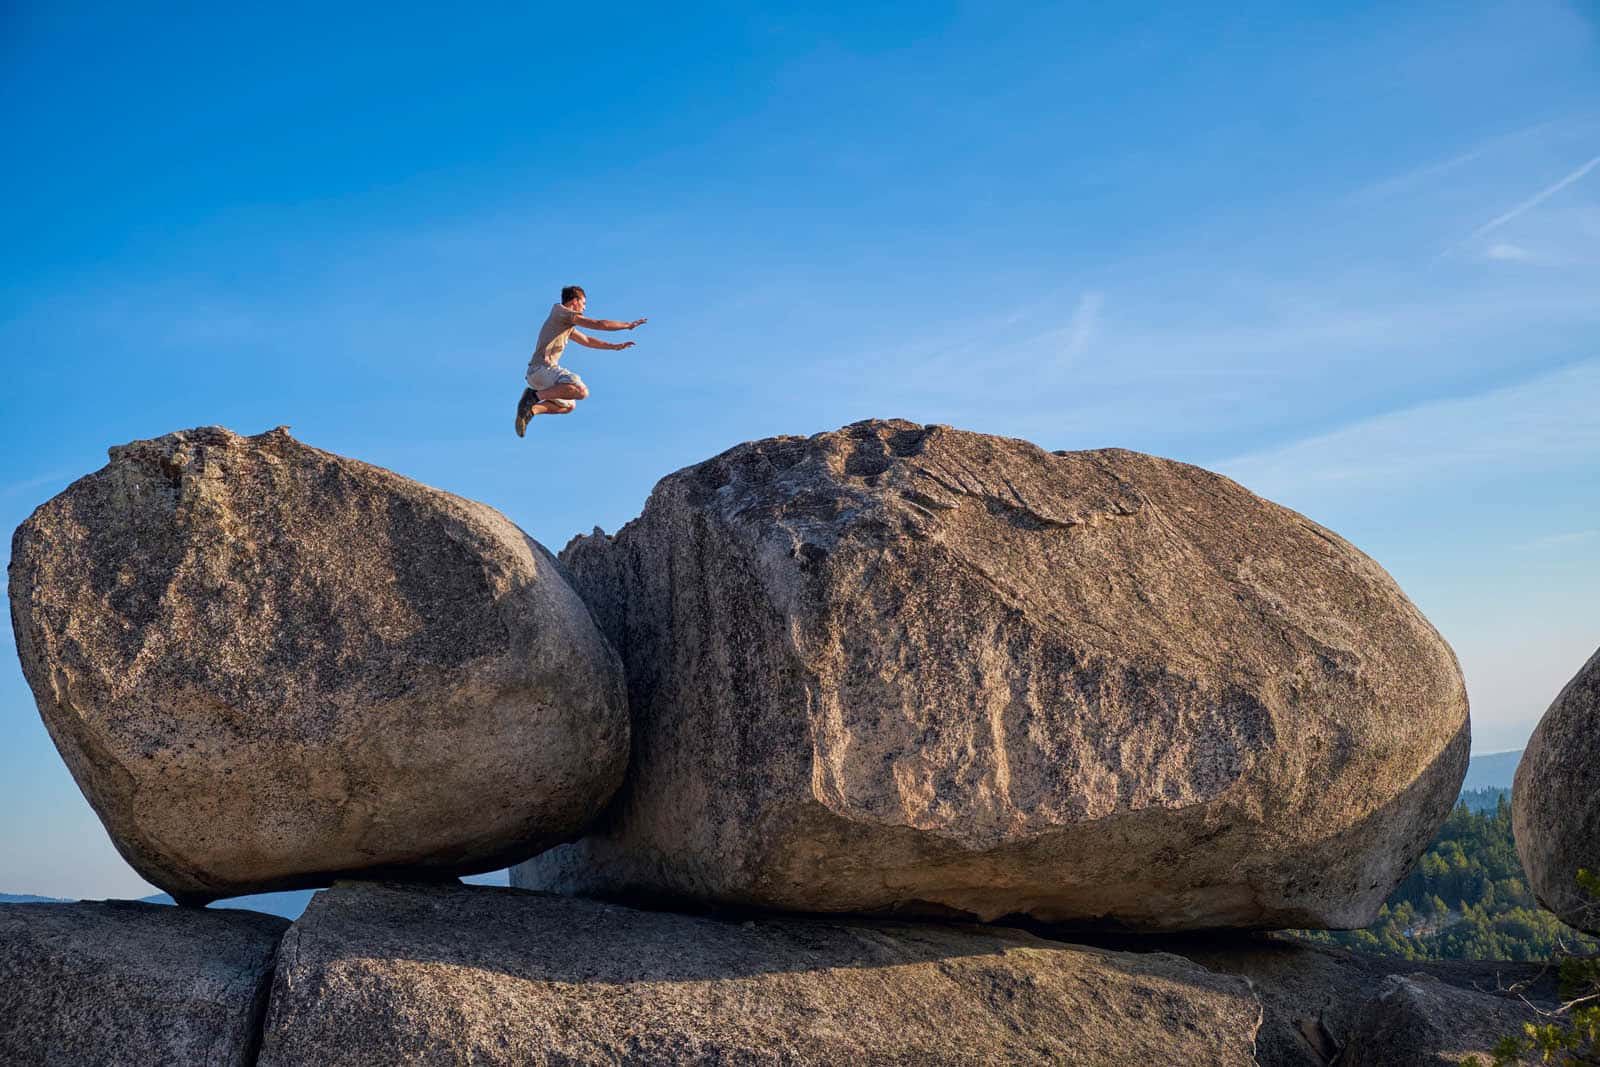 Young Man Jumping From a Large Boulder.